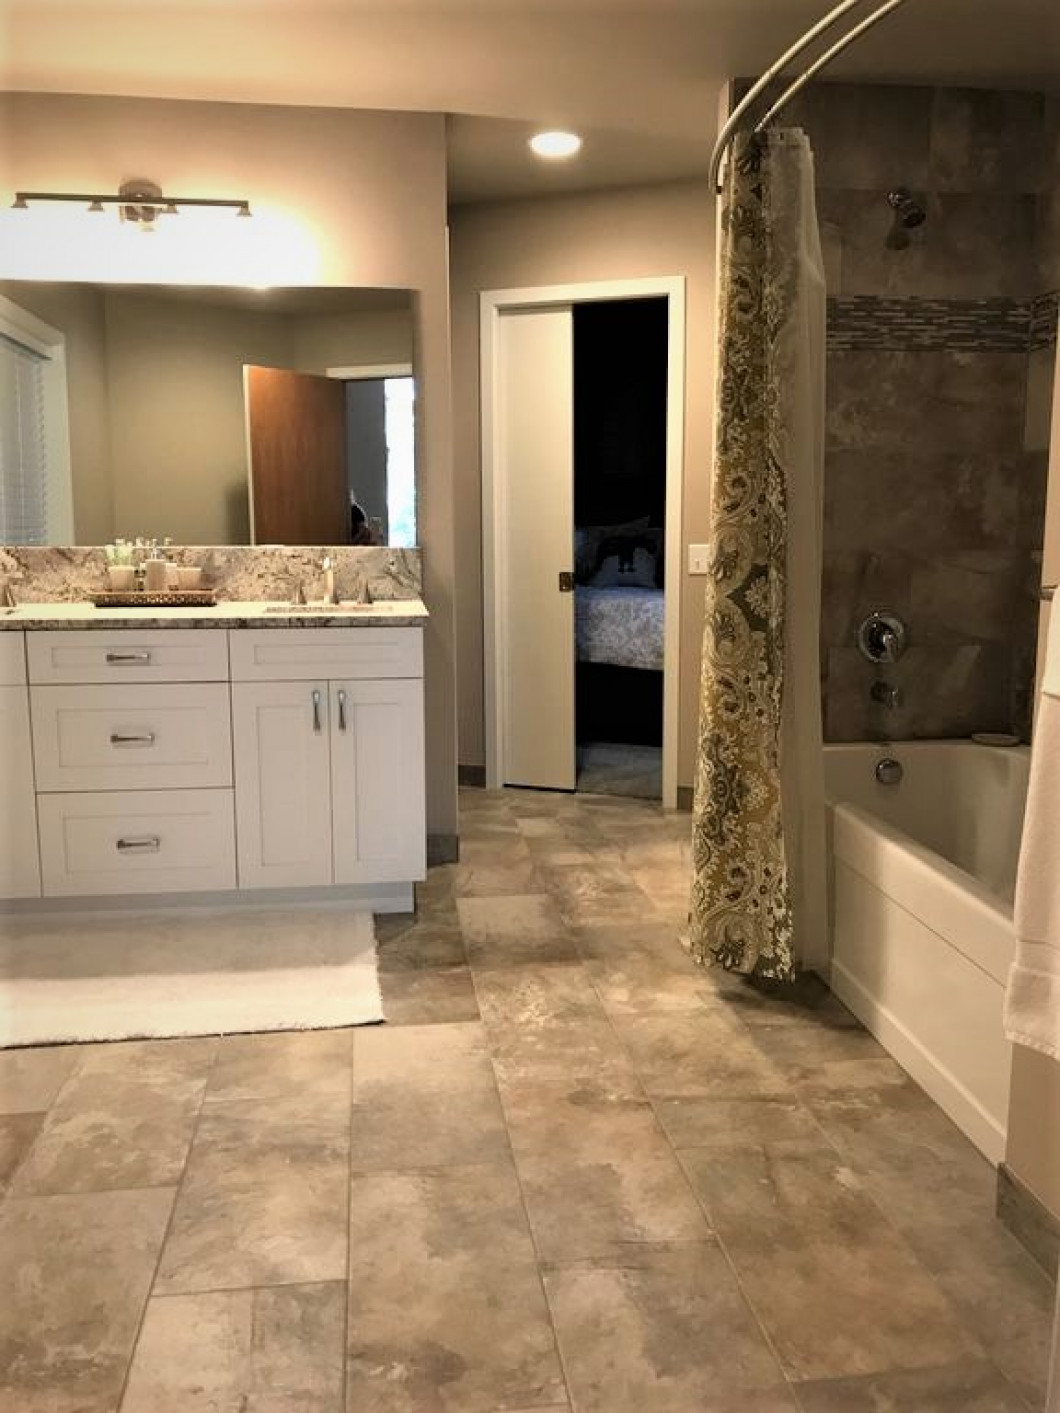 Upgrade Your Bathroom With New Walls and Flooring